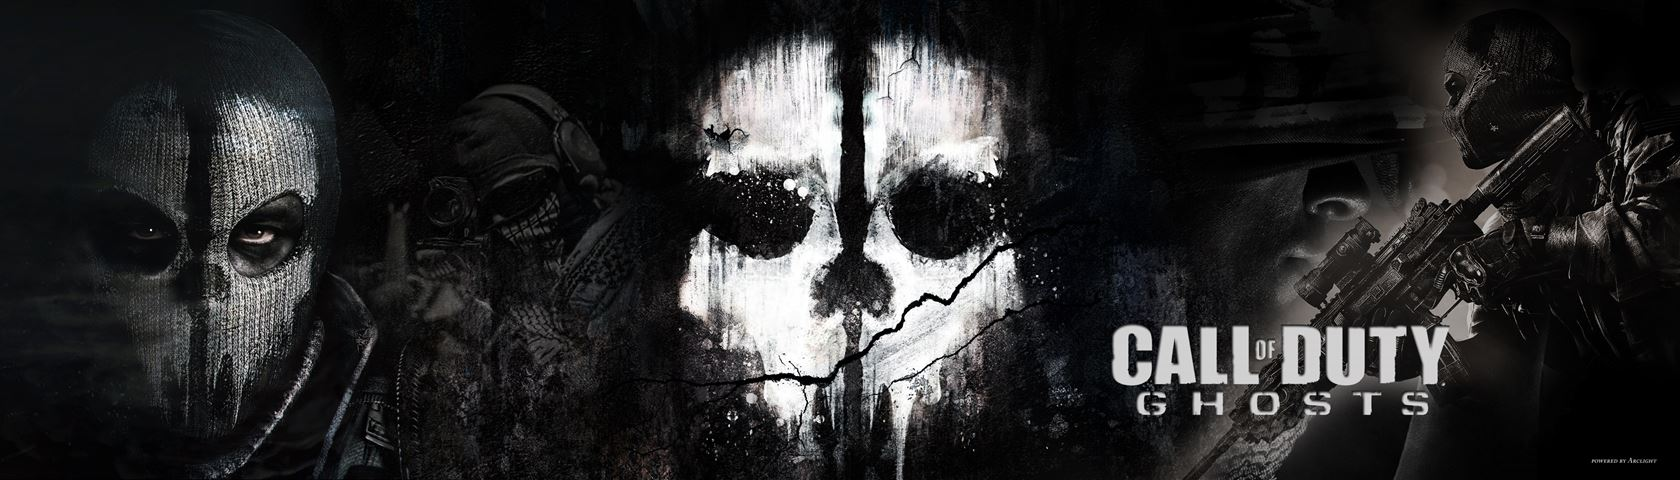 call of duty - ghosts • images • wallpaperfusionbinary fortress